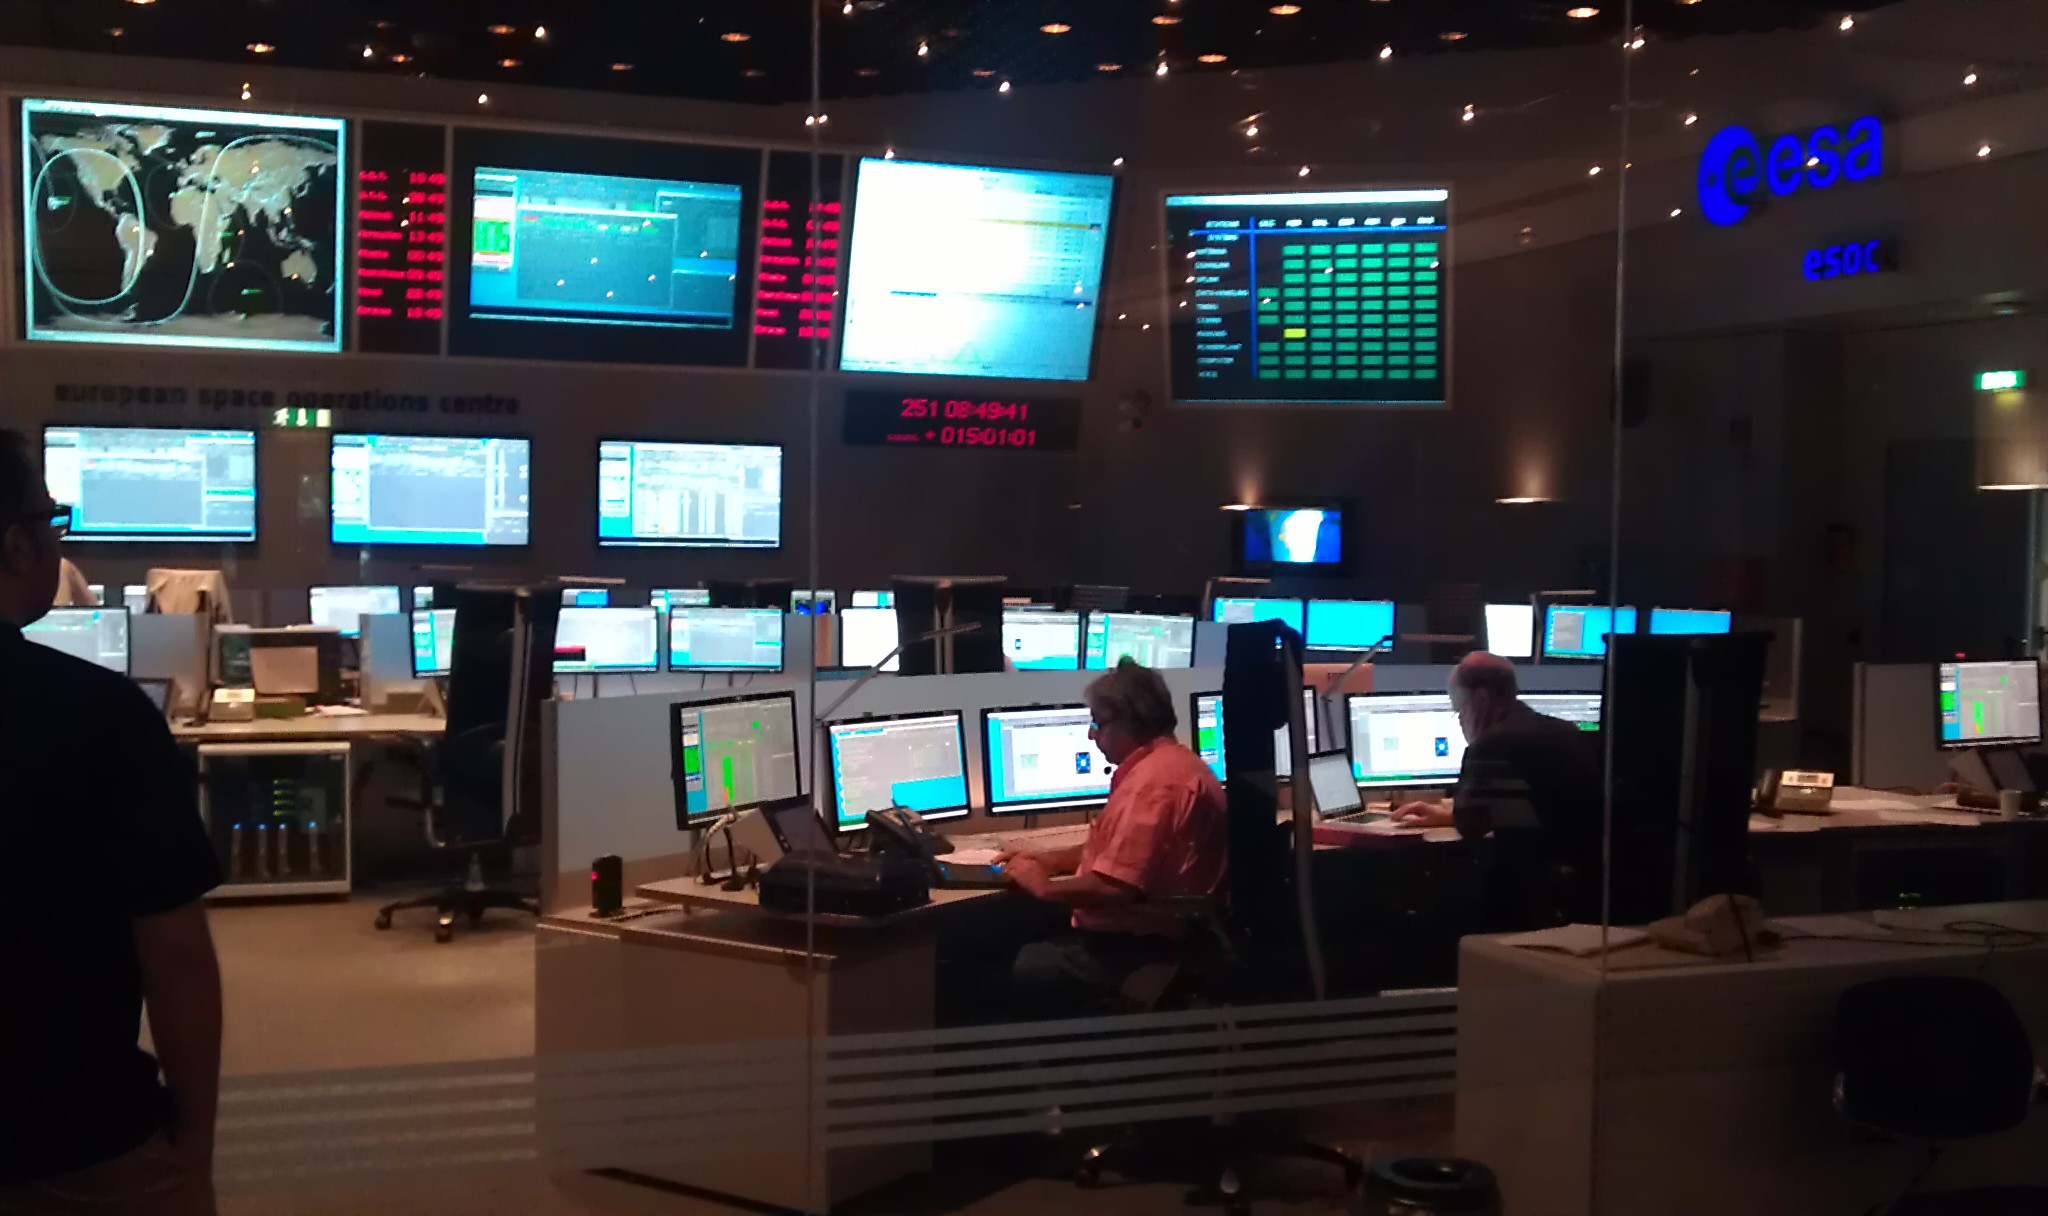 Mission control team in simulation training this AM | EO ...